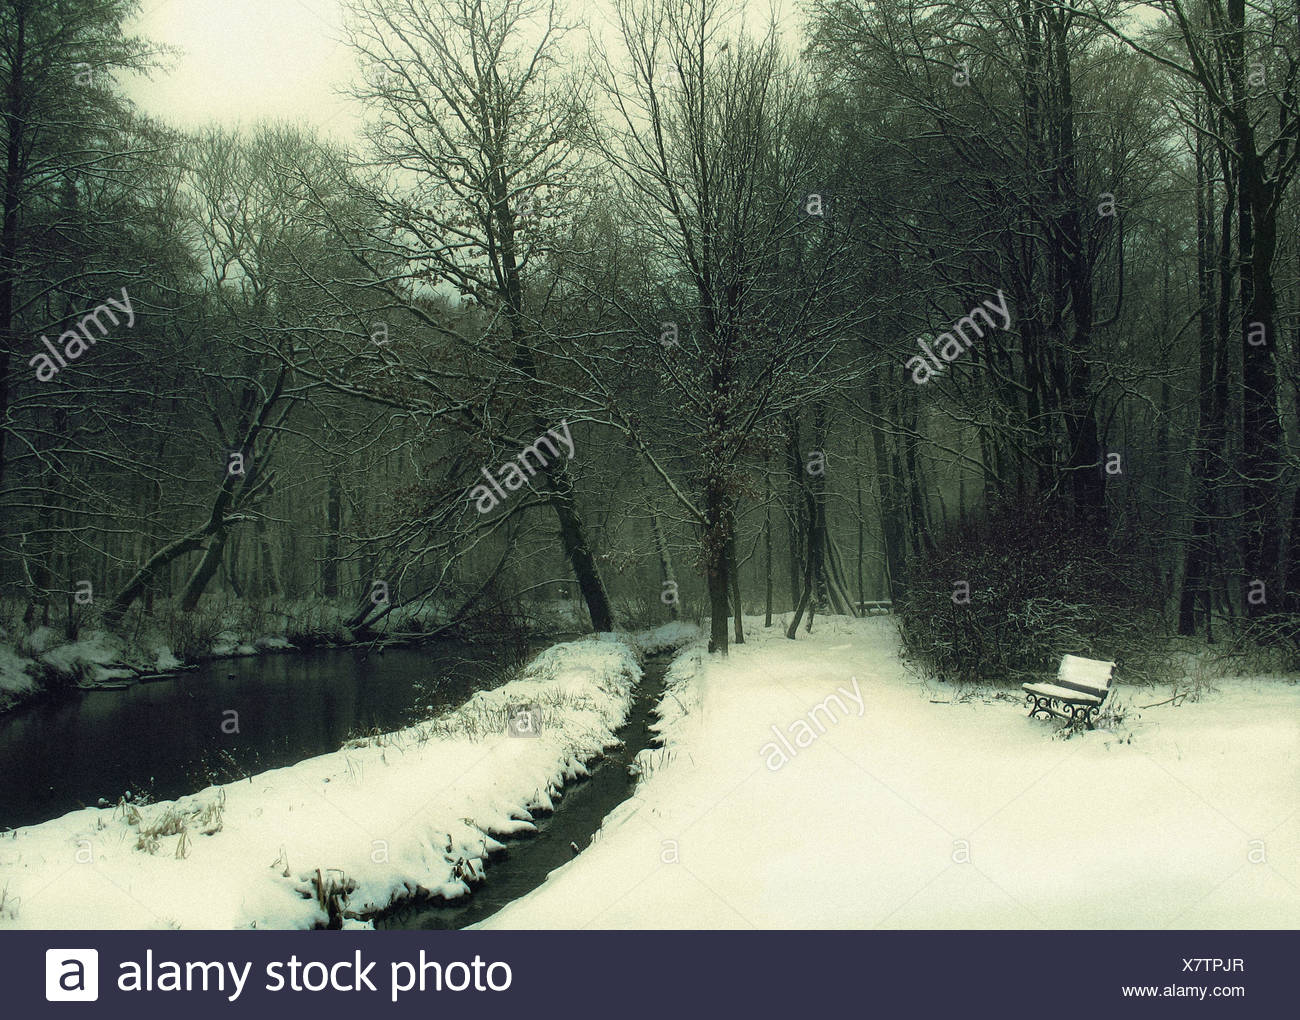 A landscape with a wood or garden in winter, a little bench on the left, covered with snow, and a river bank on the right. - Stock Image